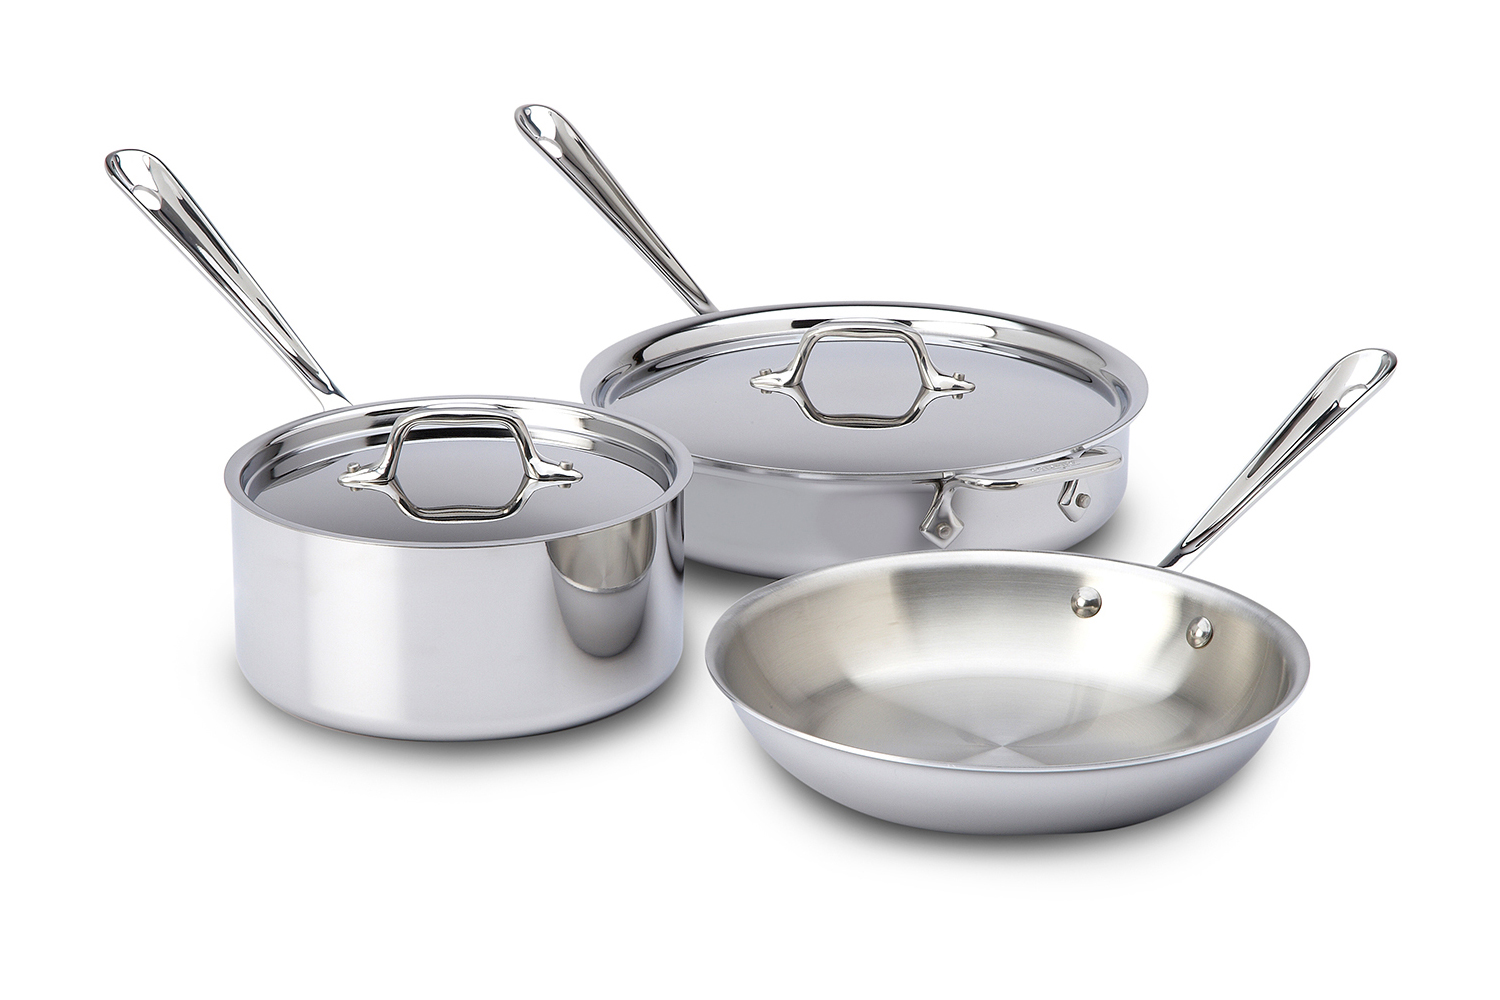 All-Clad Tri-Ply Stainless Steel 5 Piece Cookware Set (401599) by All-Clad